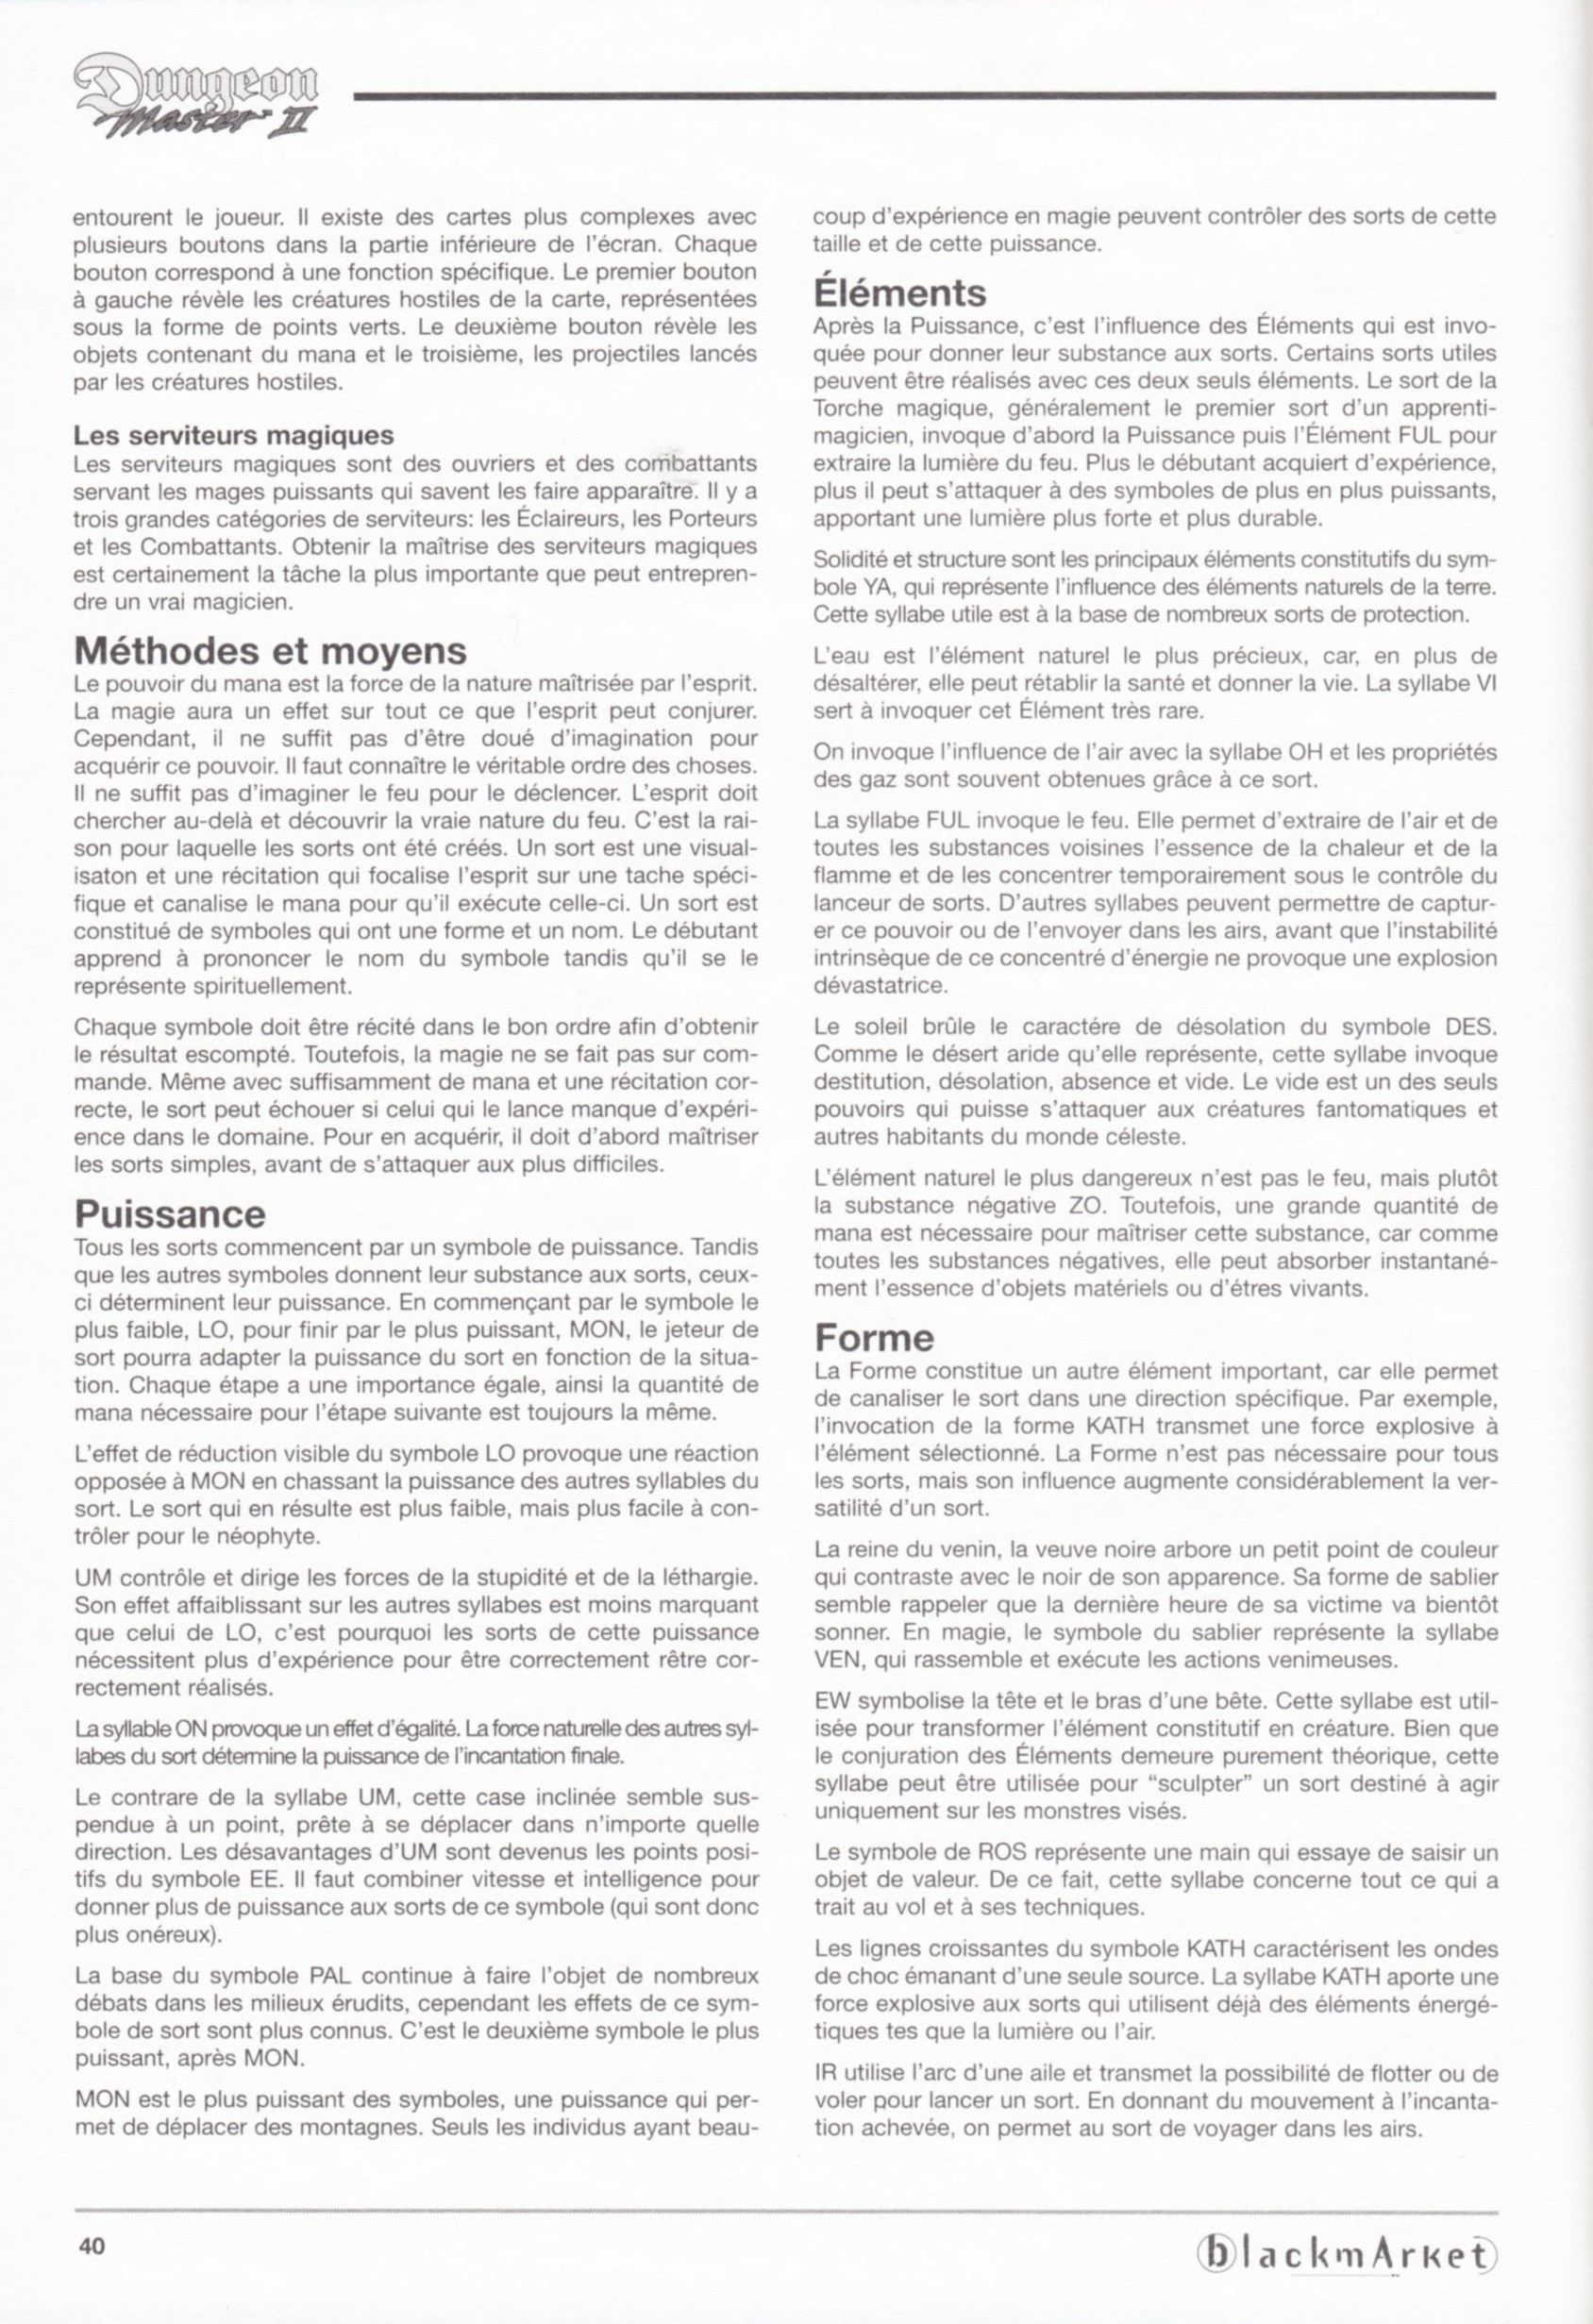 Game - Dungeon Master II - DE - PC - Blackmarket With Manual - Manual - Page 042 - Scan